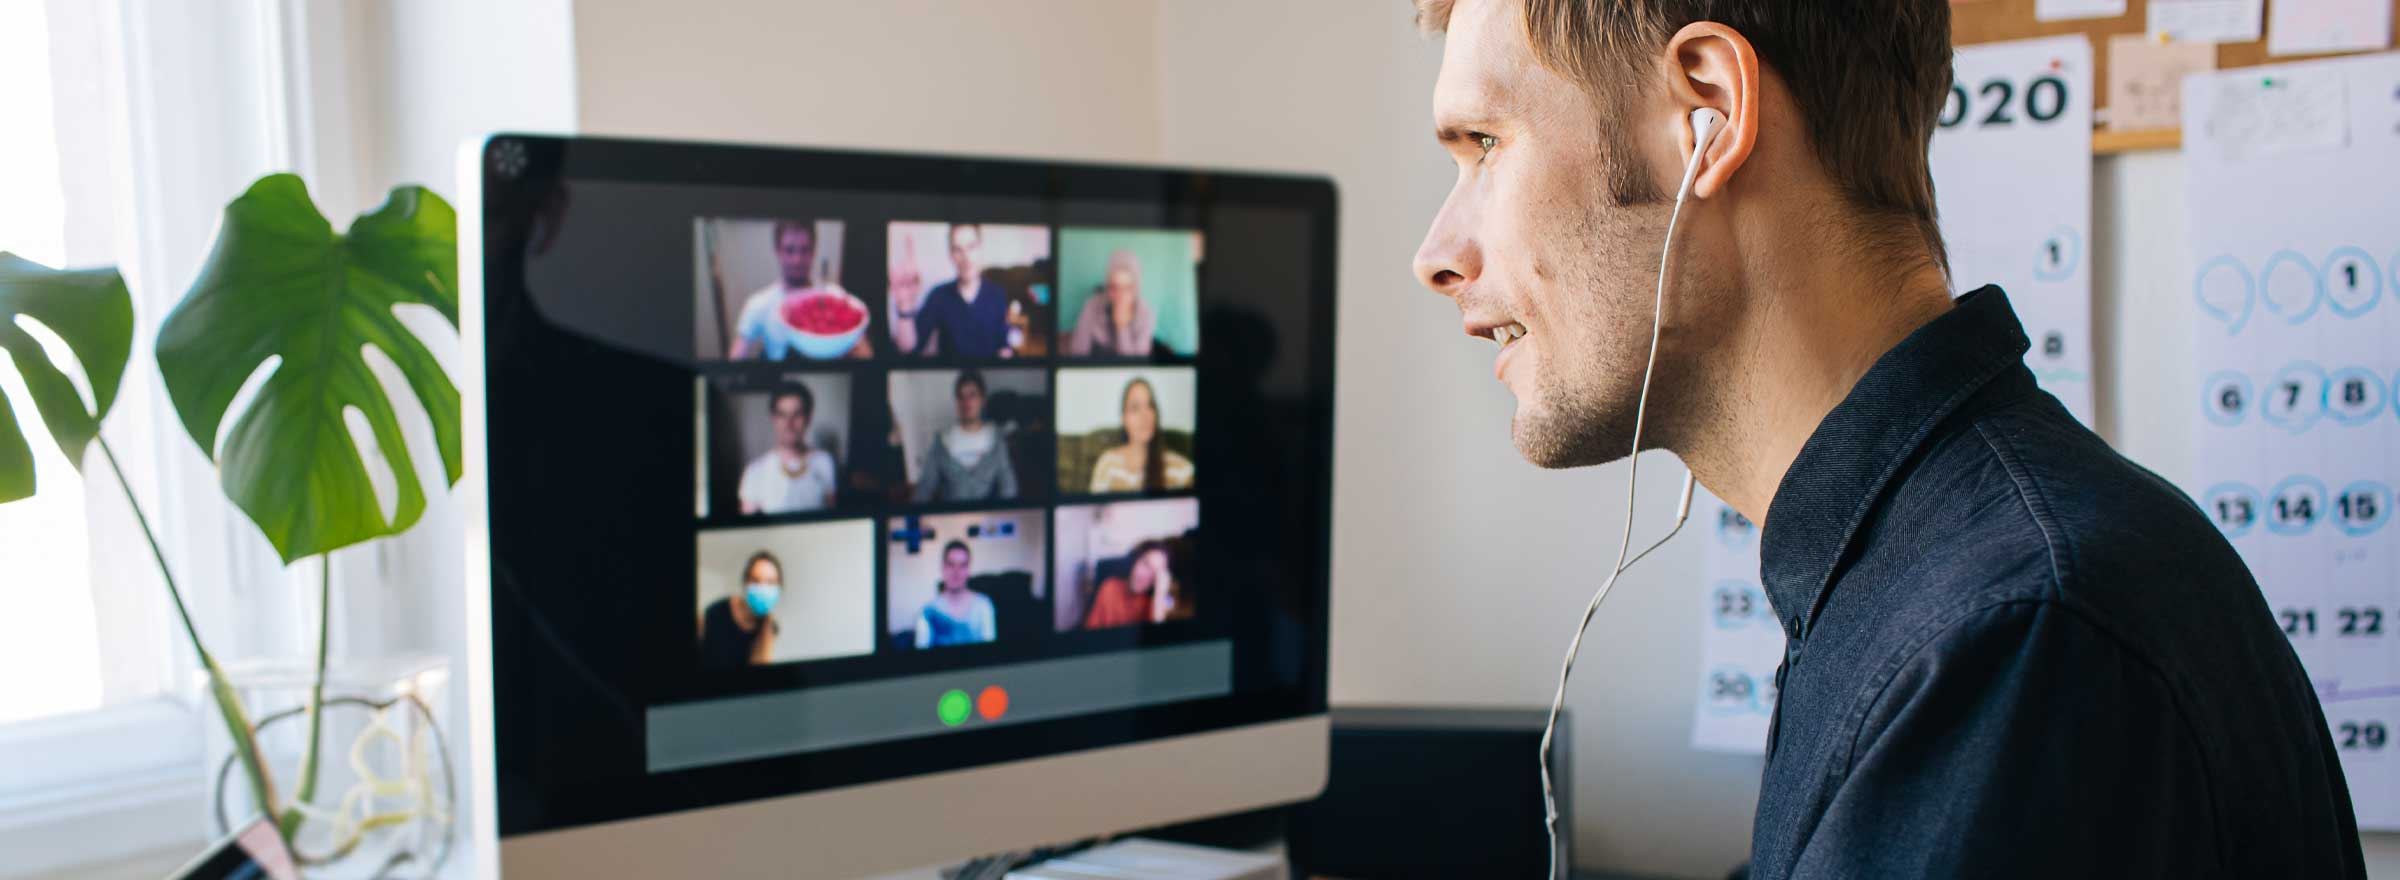 man participating in a video conference